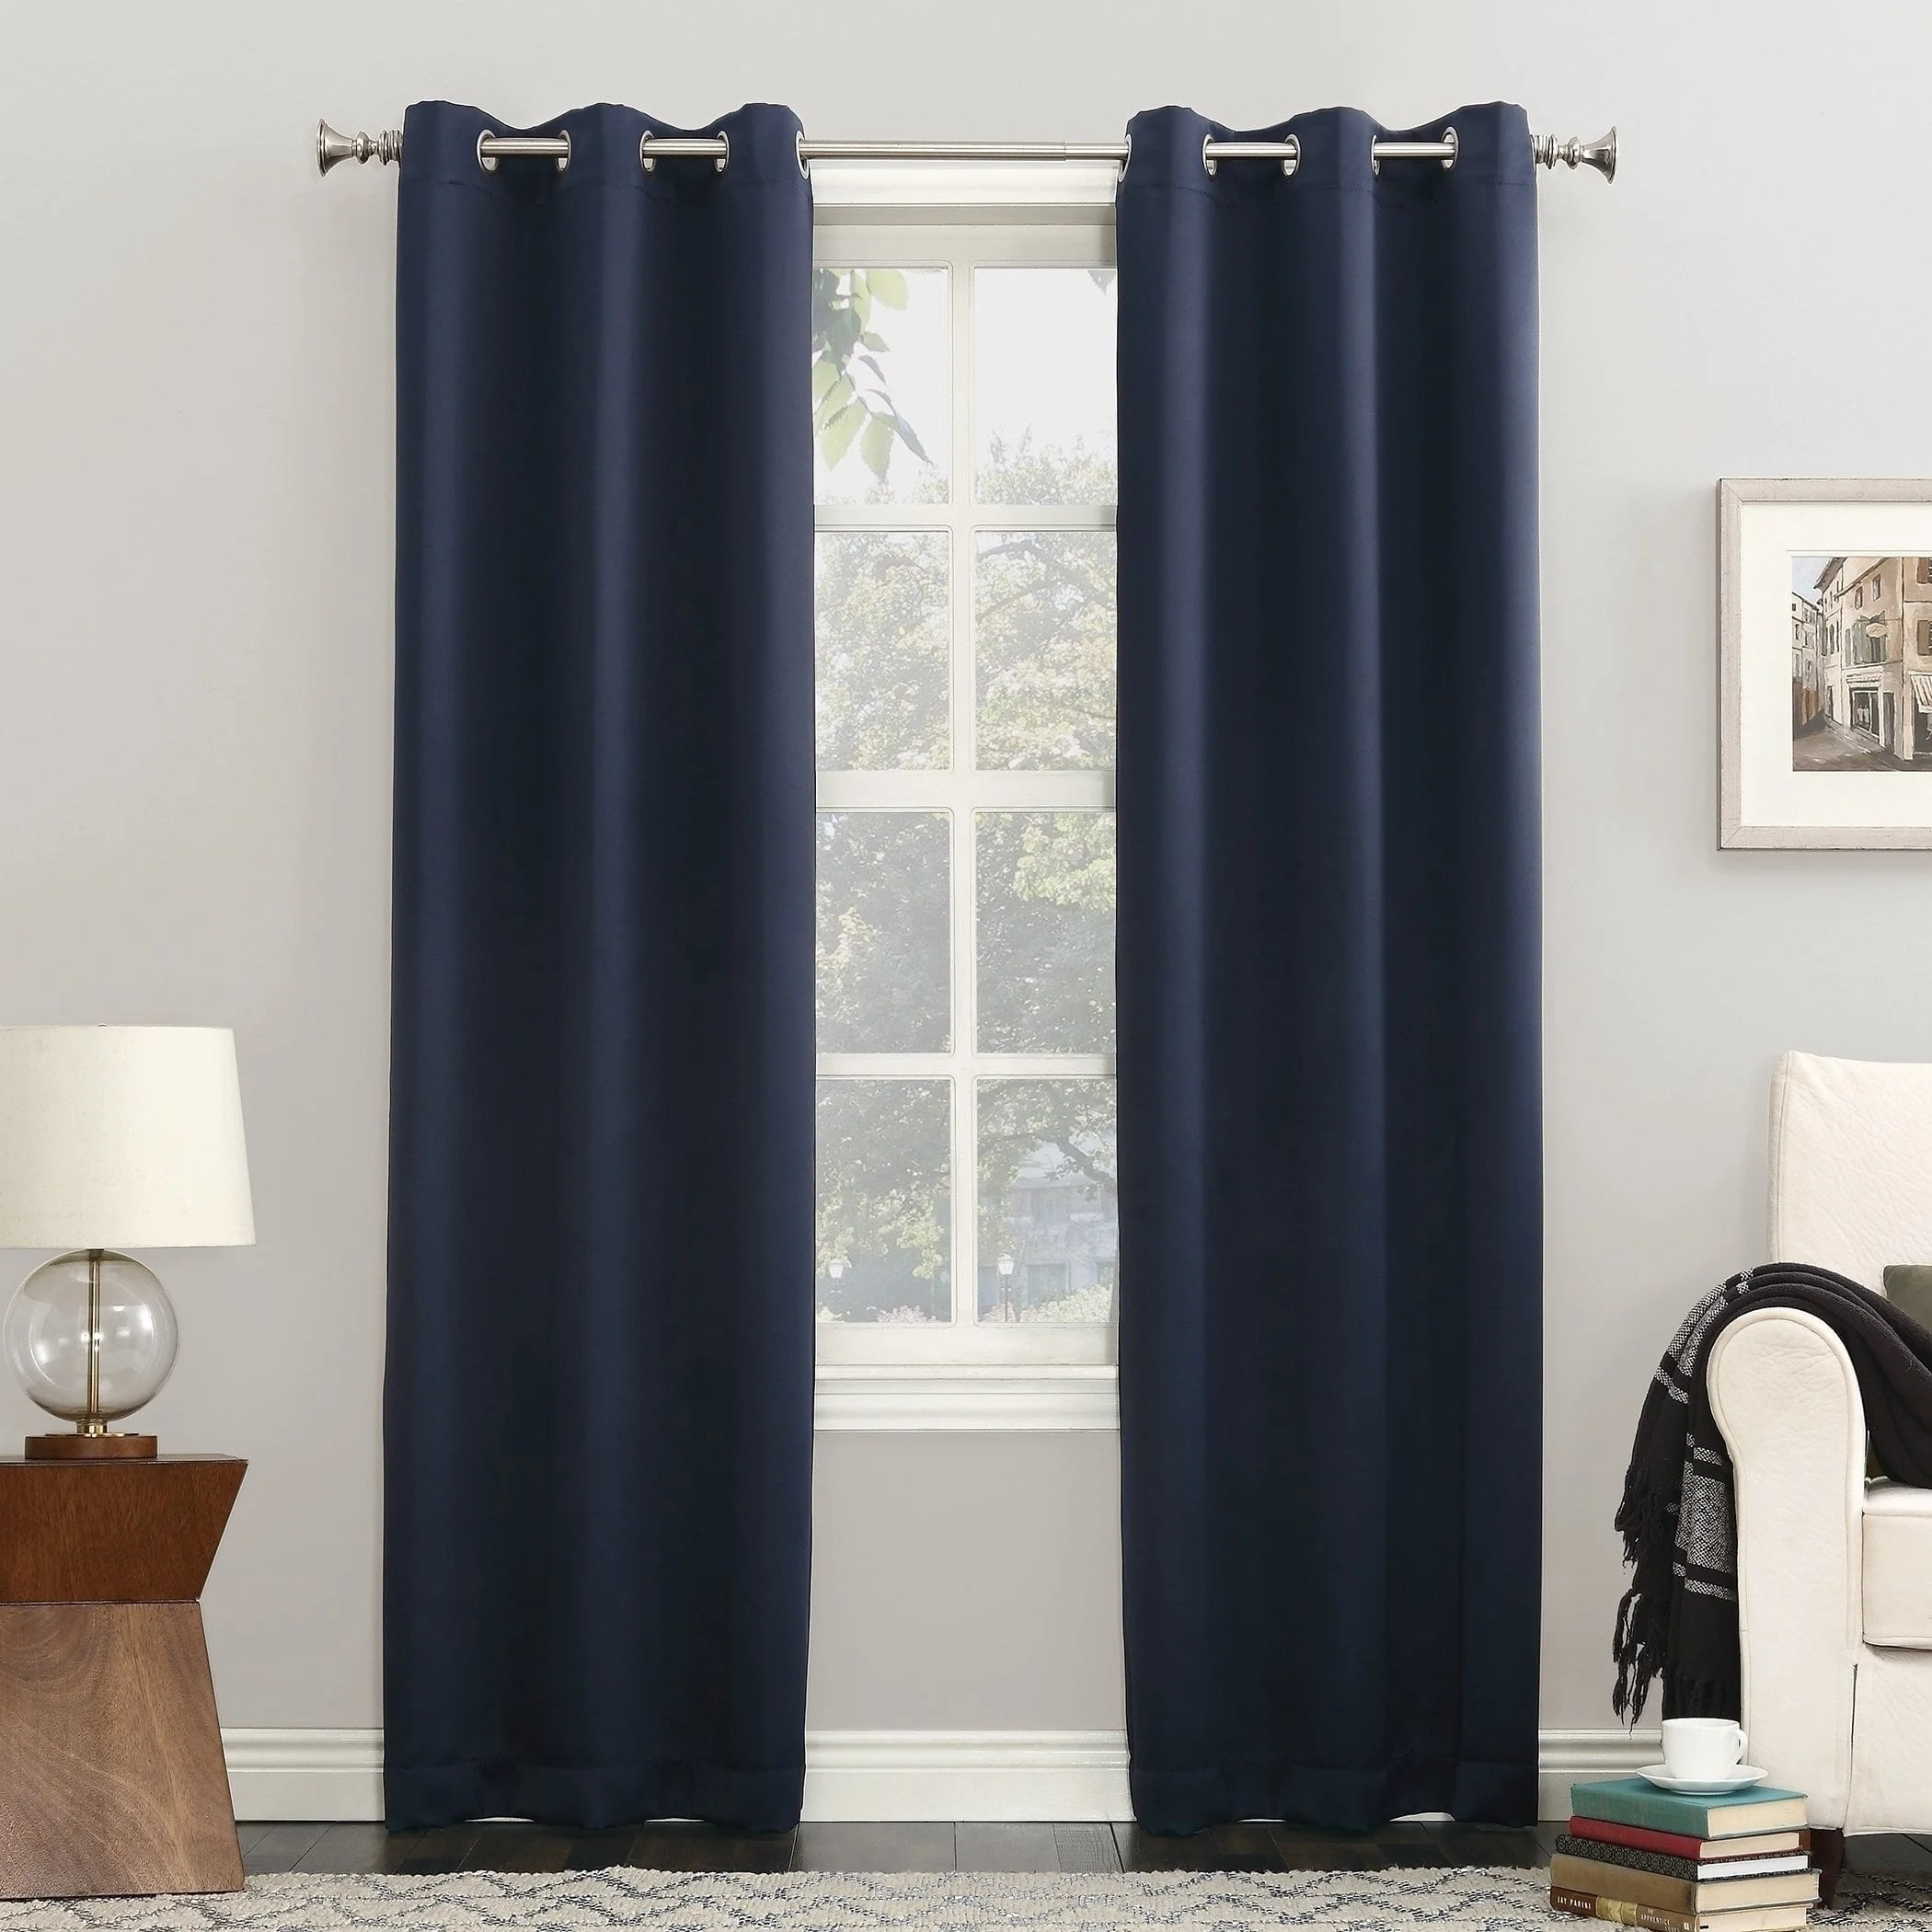 36 Inch Room Darkening Curtains Buy Blackout Curtains Drapes Online At Overstock Our Best